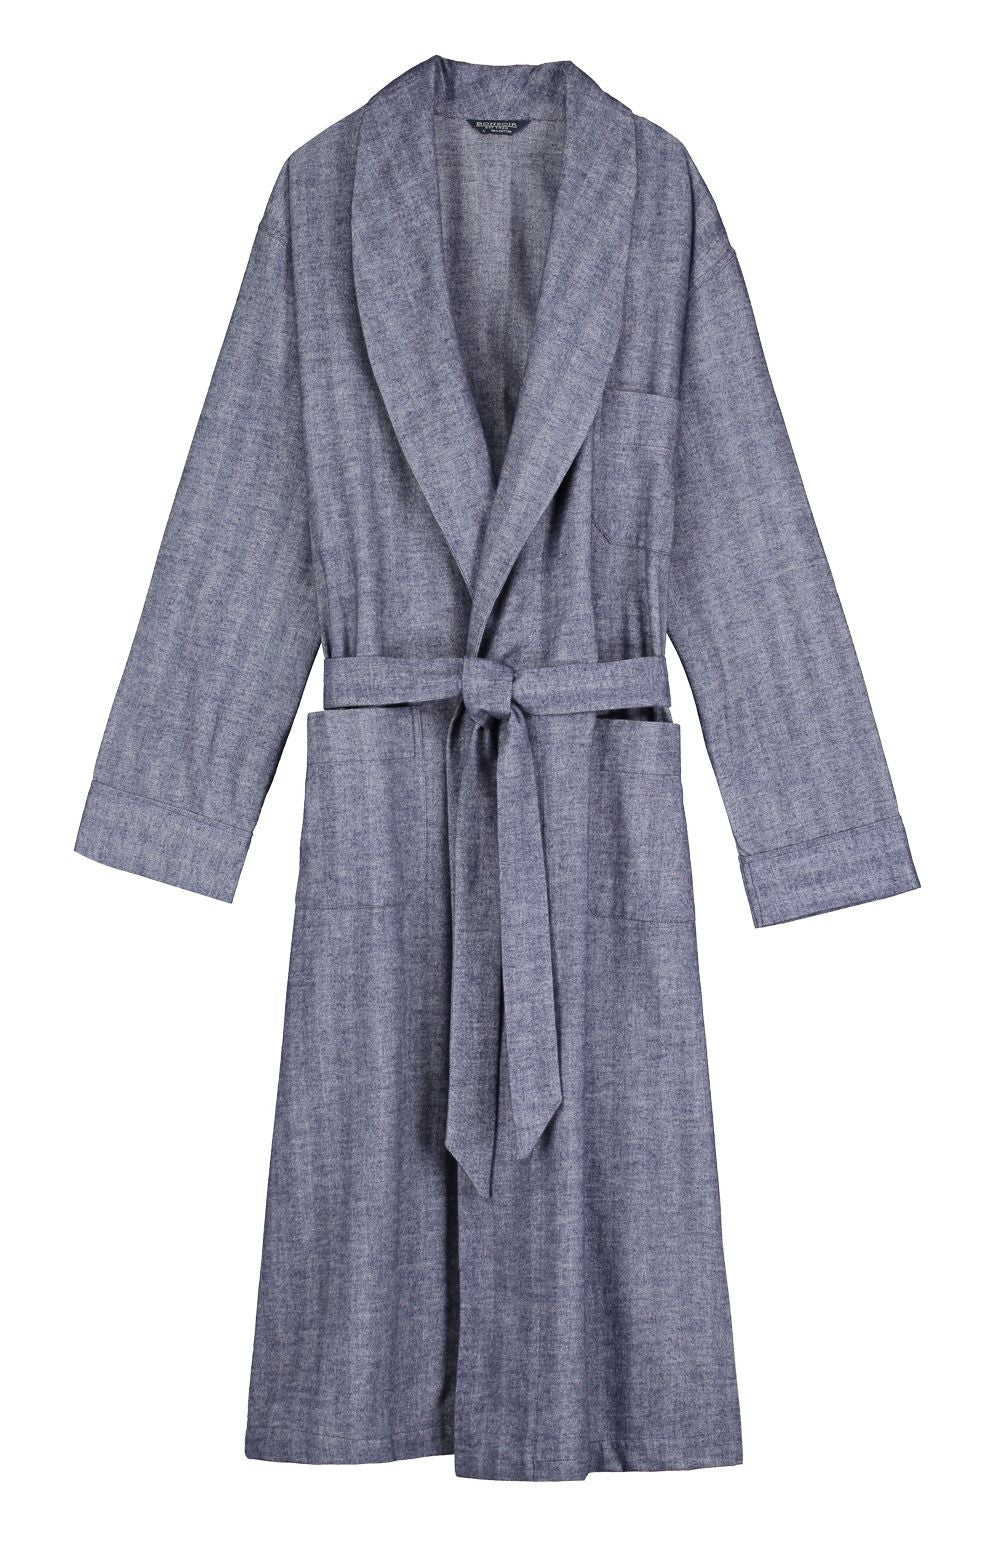 BRUSHED COTTON GOWN - NAVY | Bonsoir of London